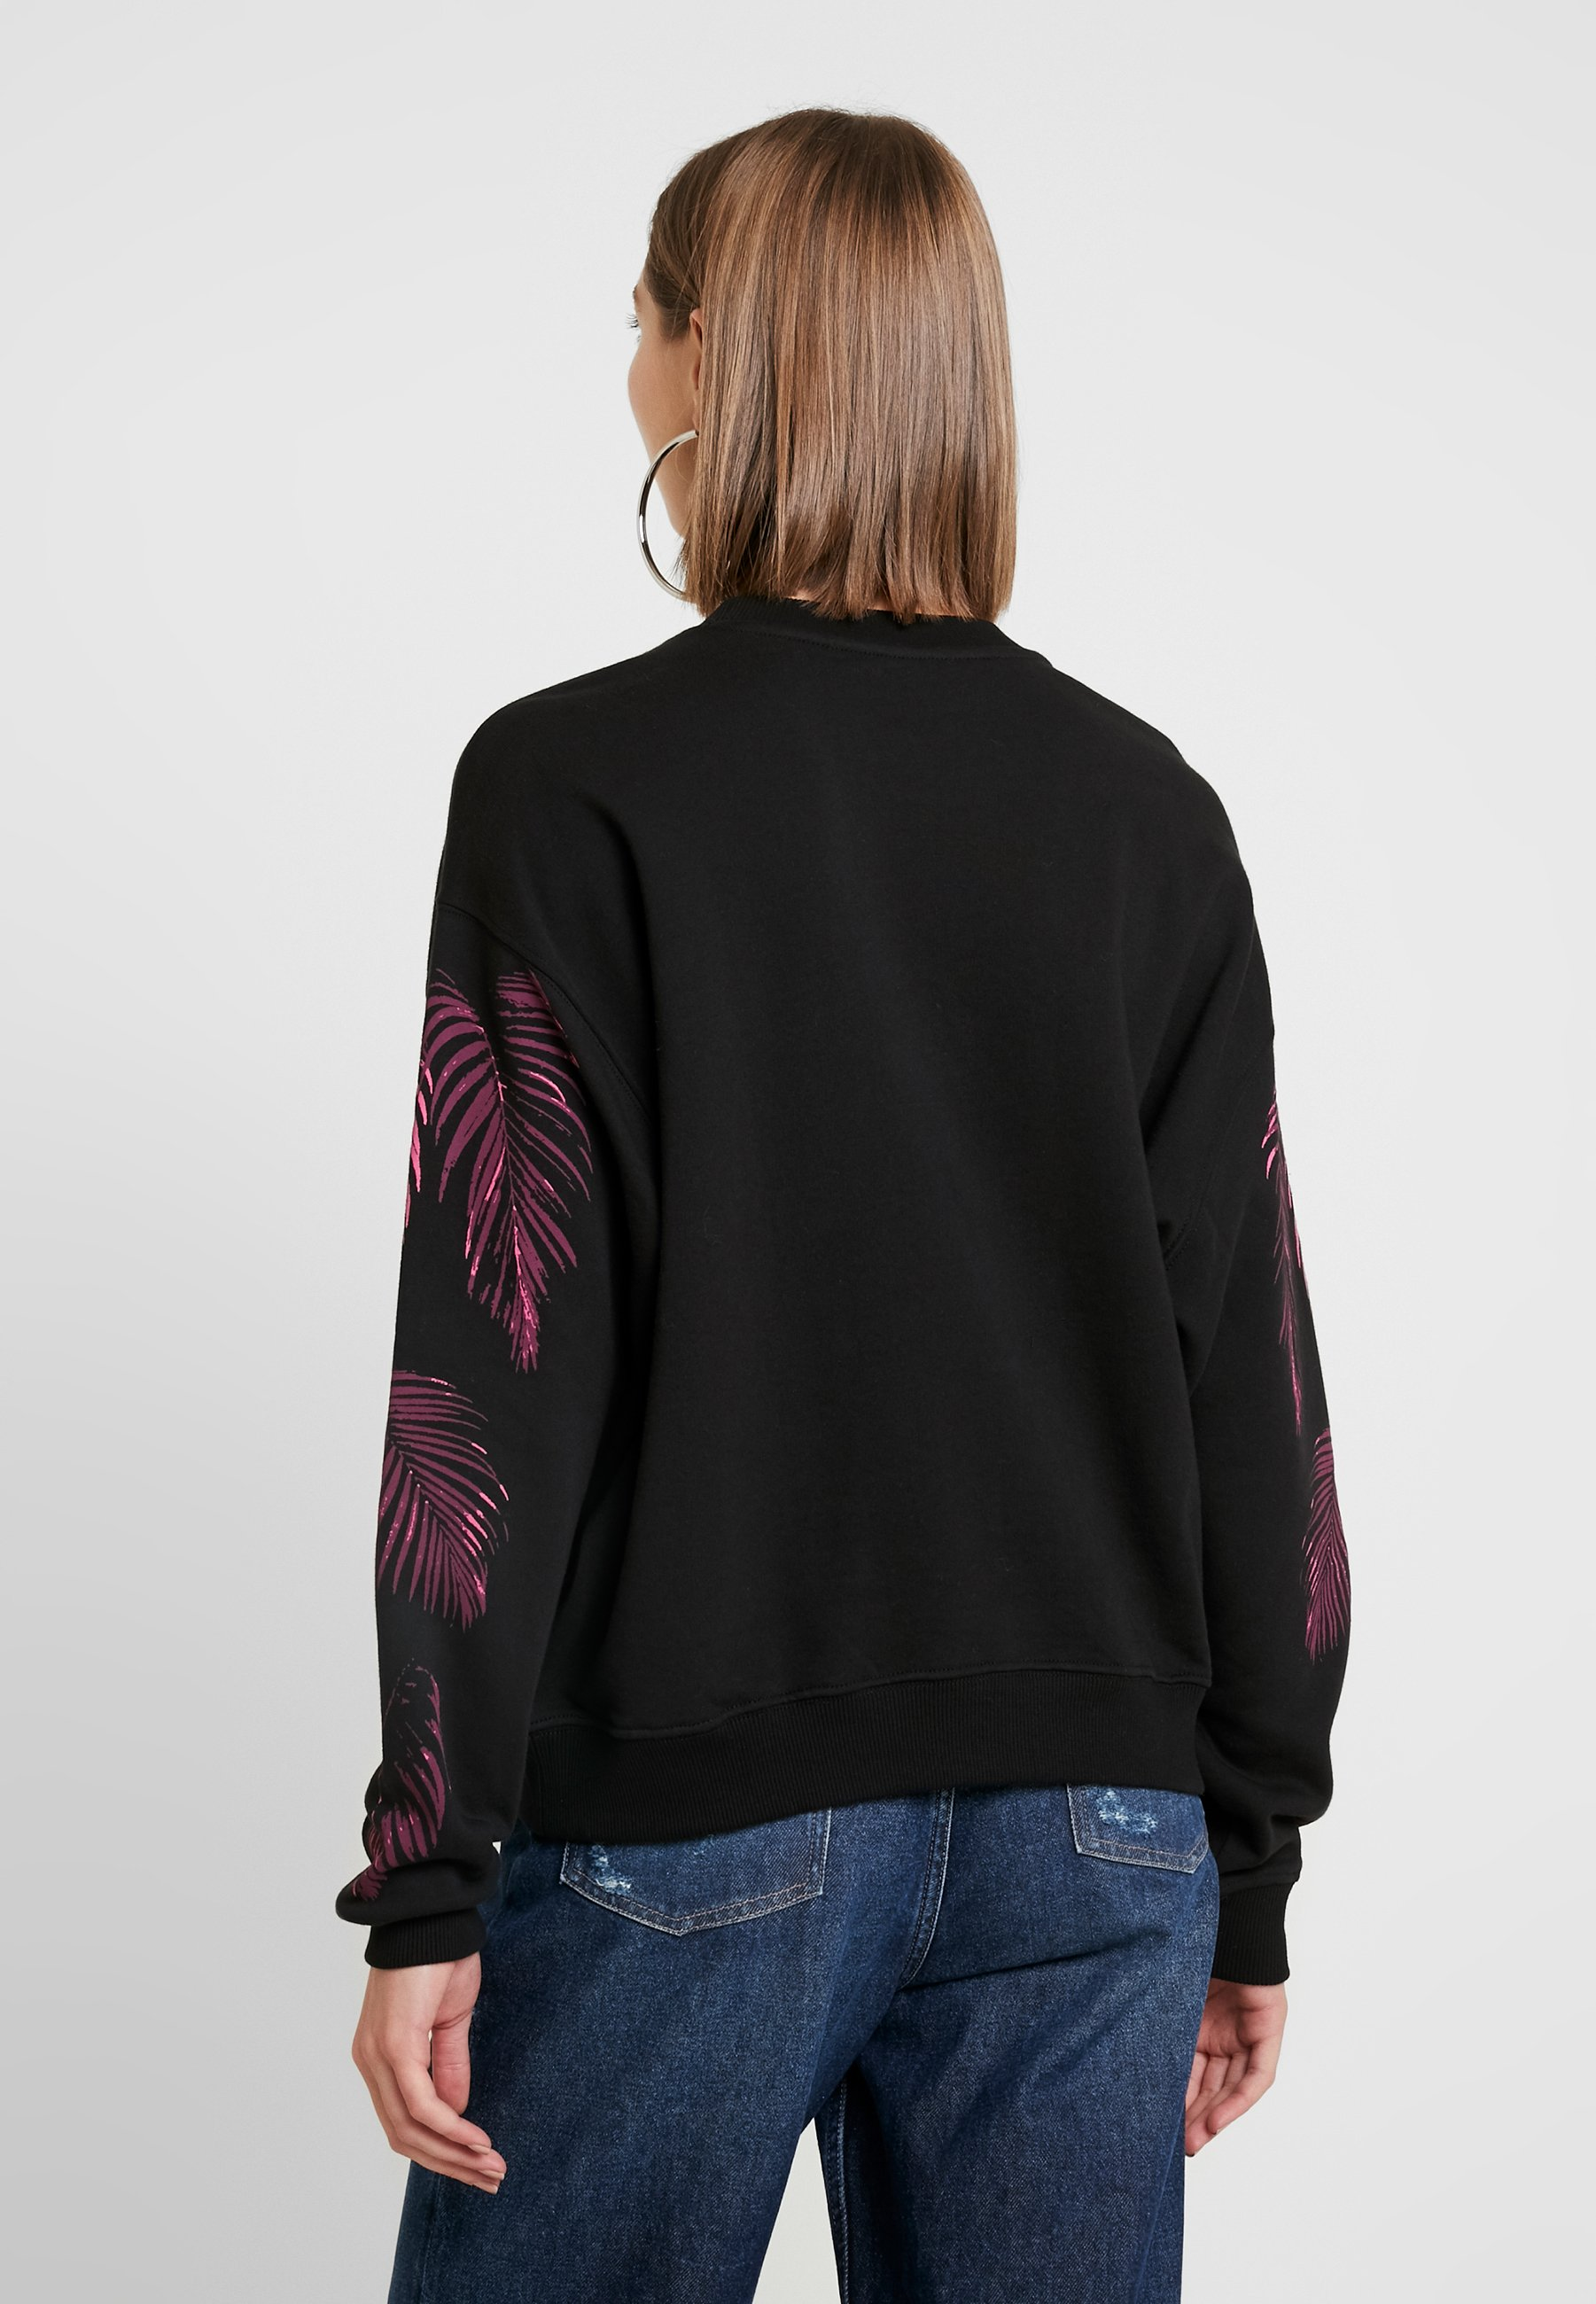 Lee BOTANICAL - Sweatshirt black